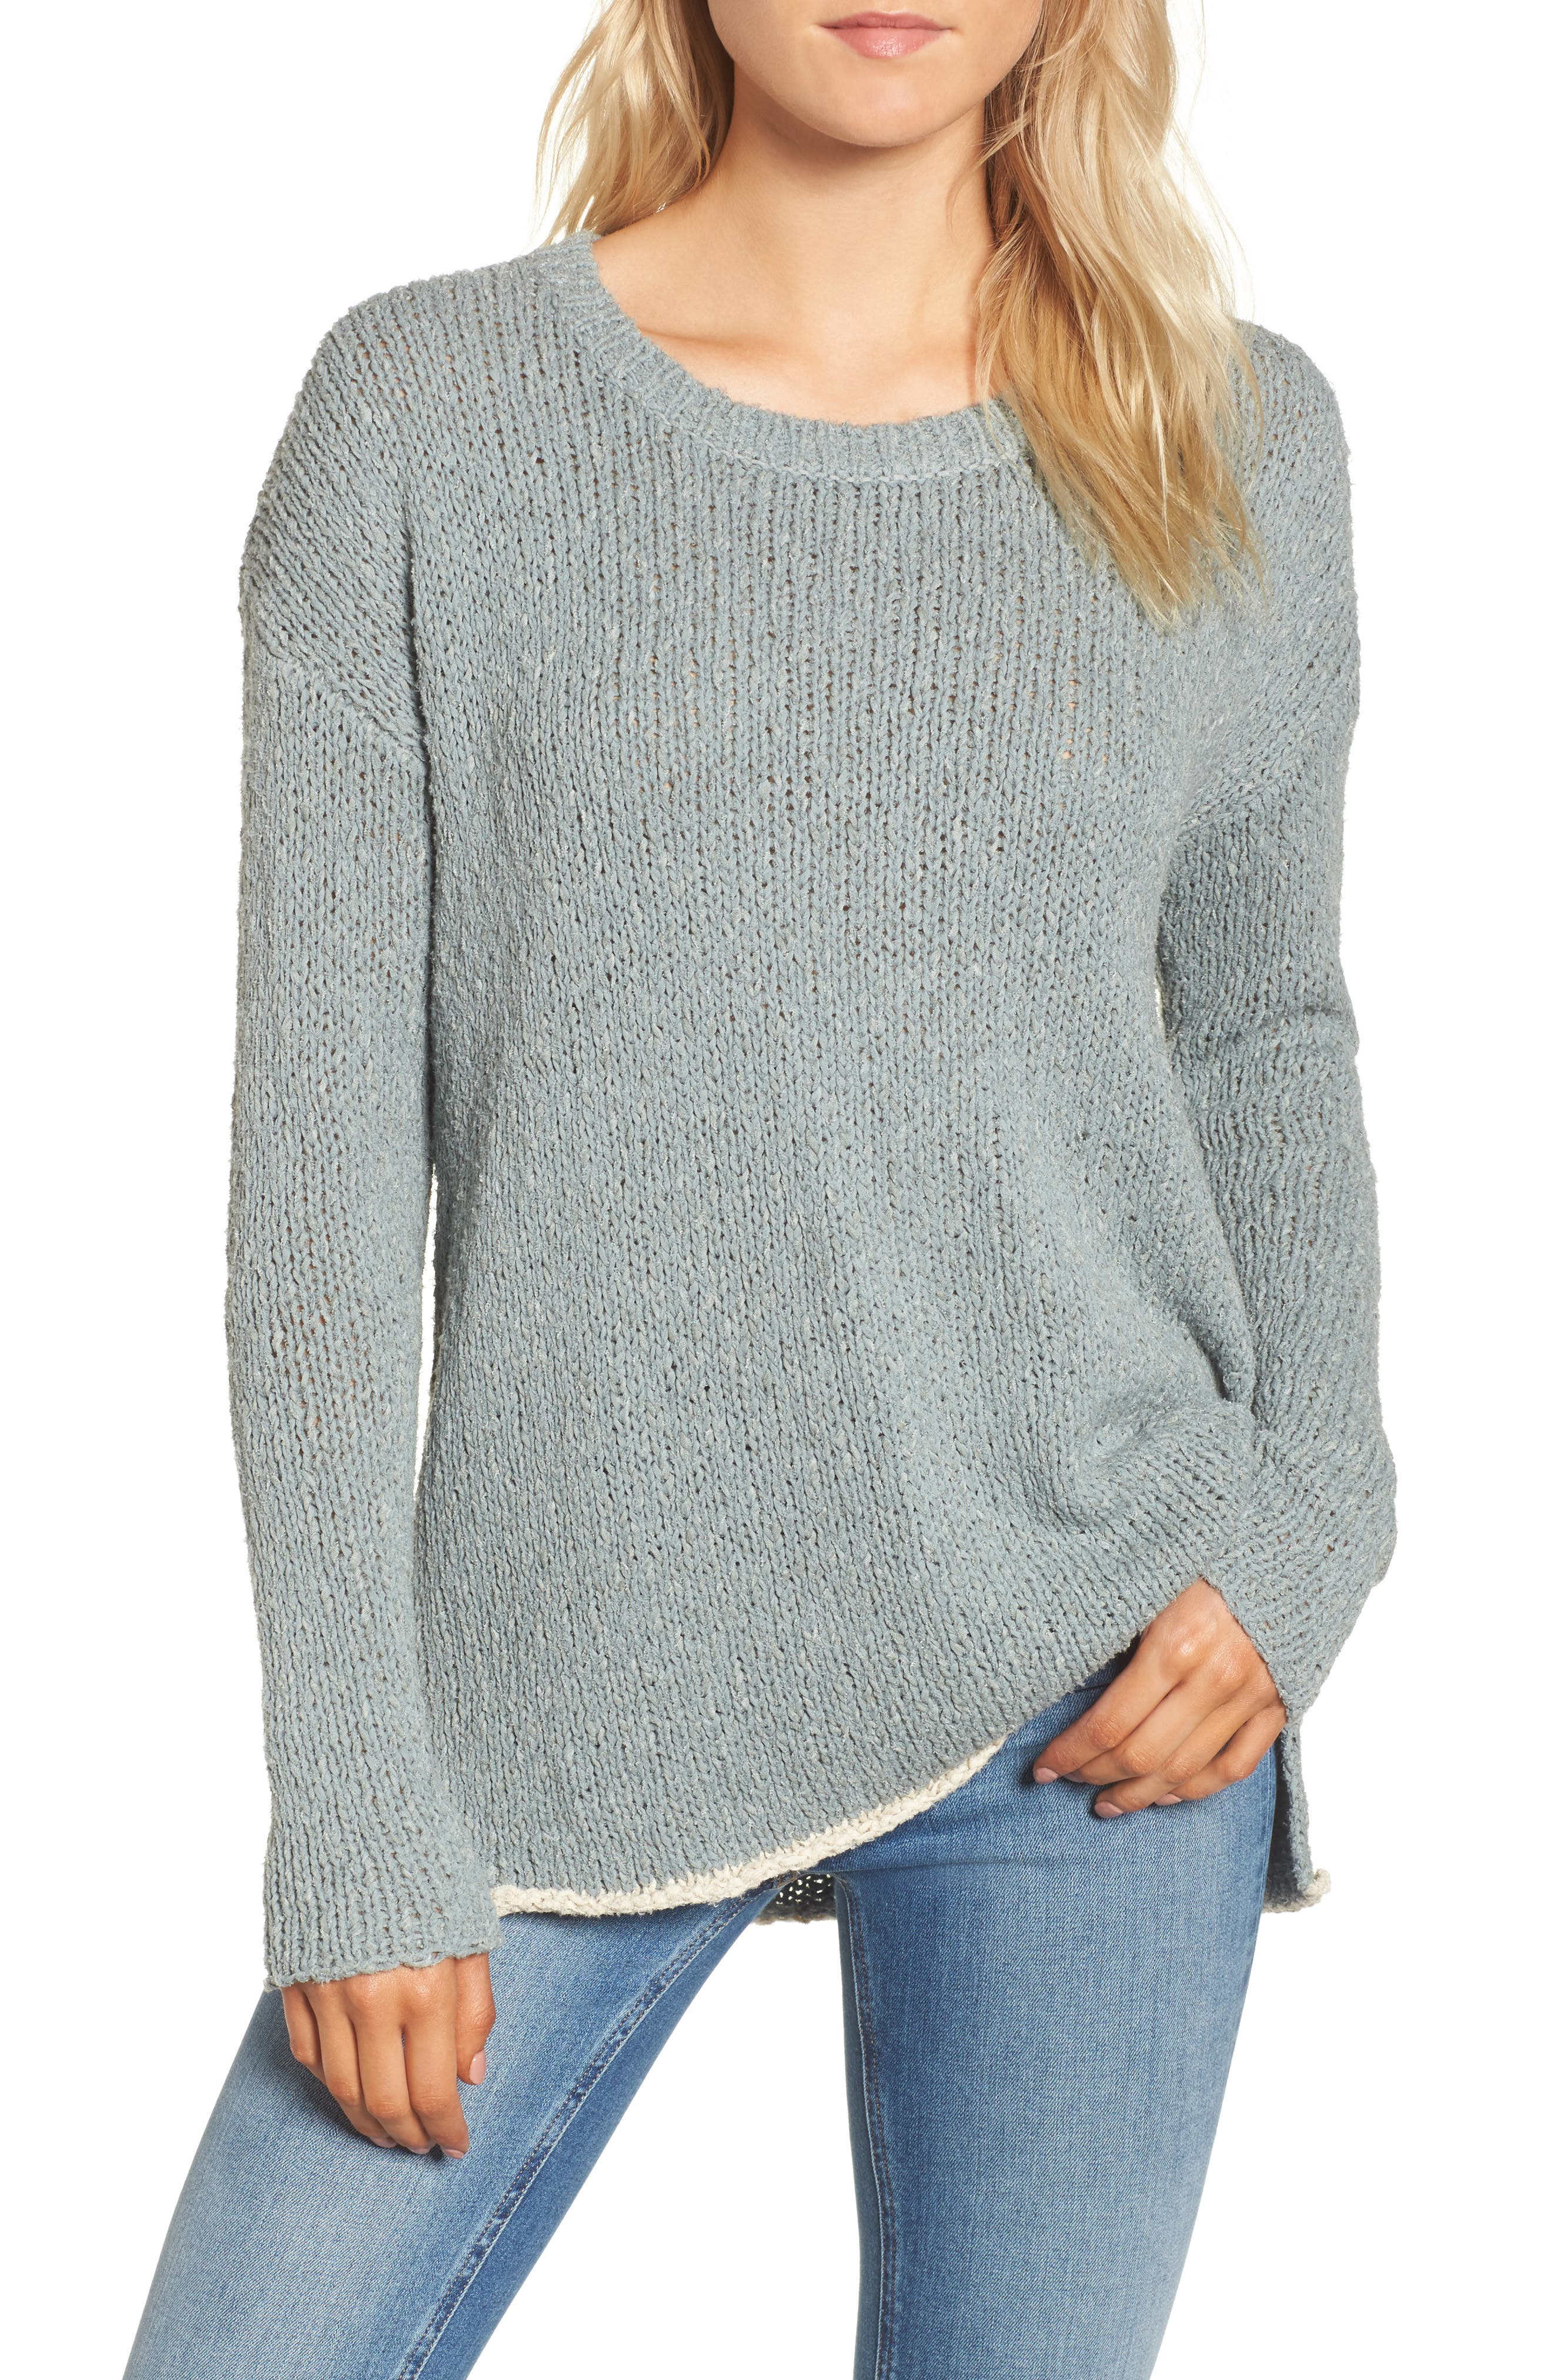 Main Image - James Perse Oversize Sweater